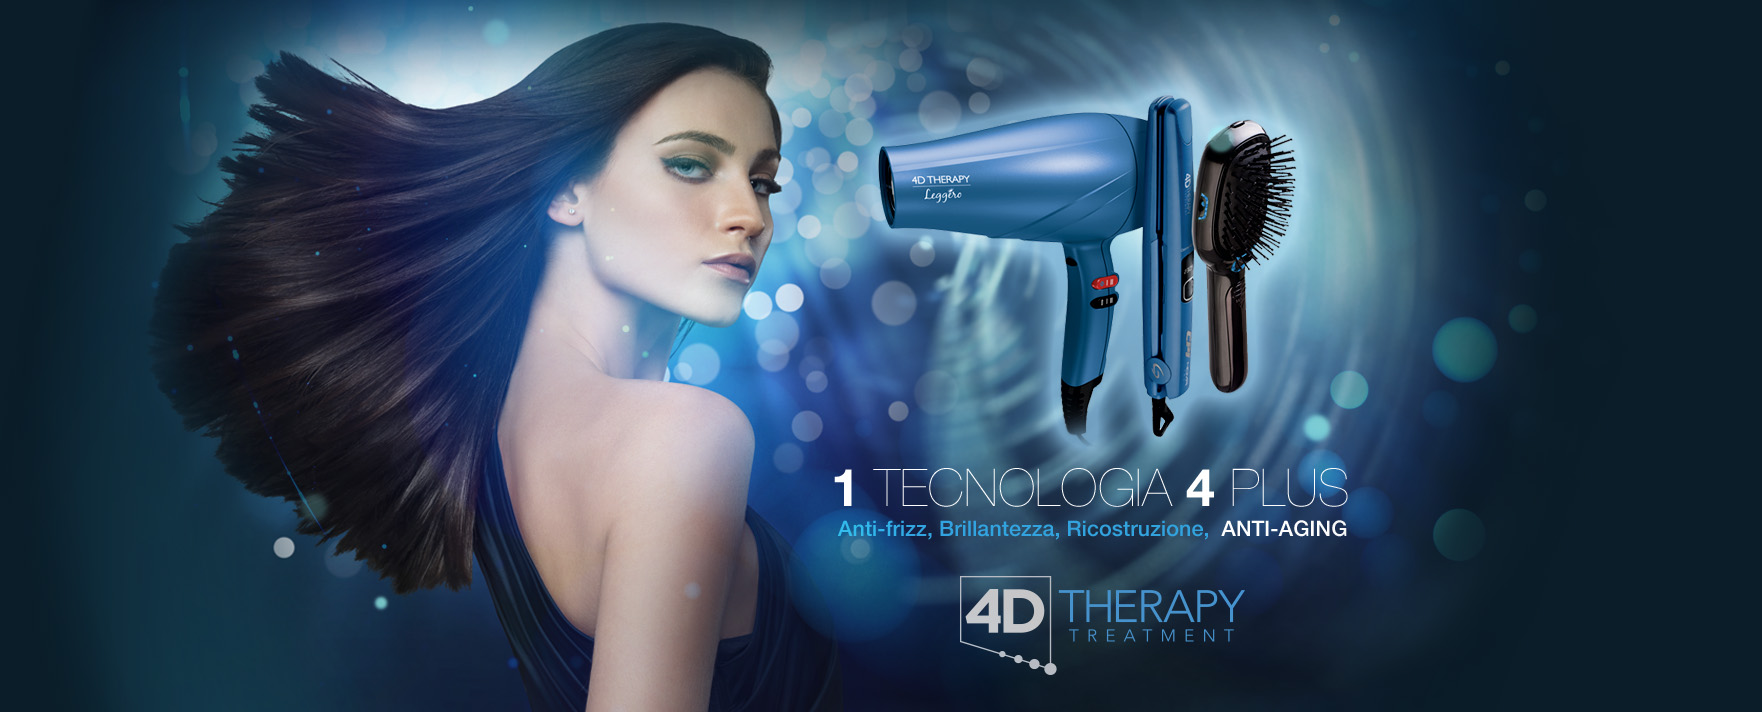 4D Therapy